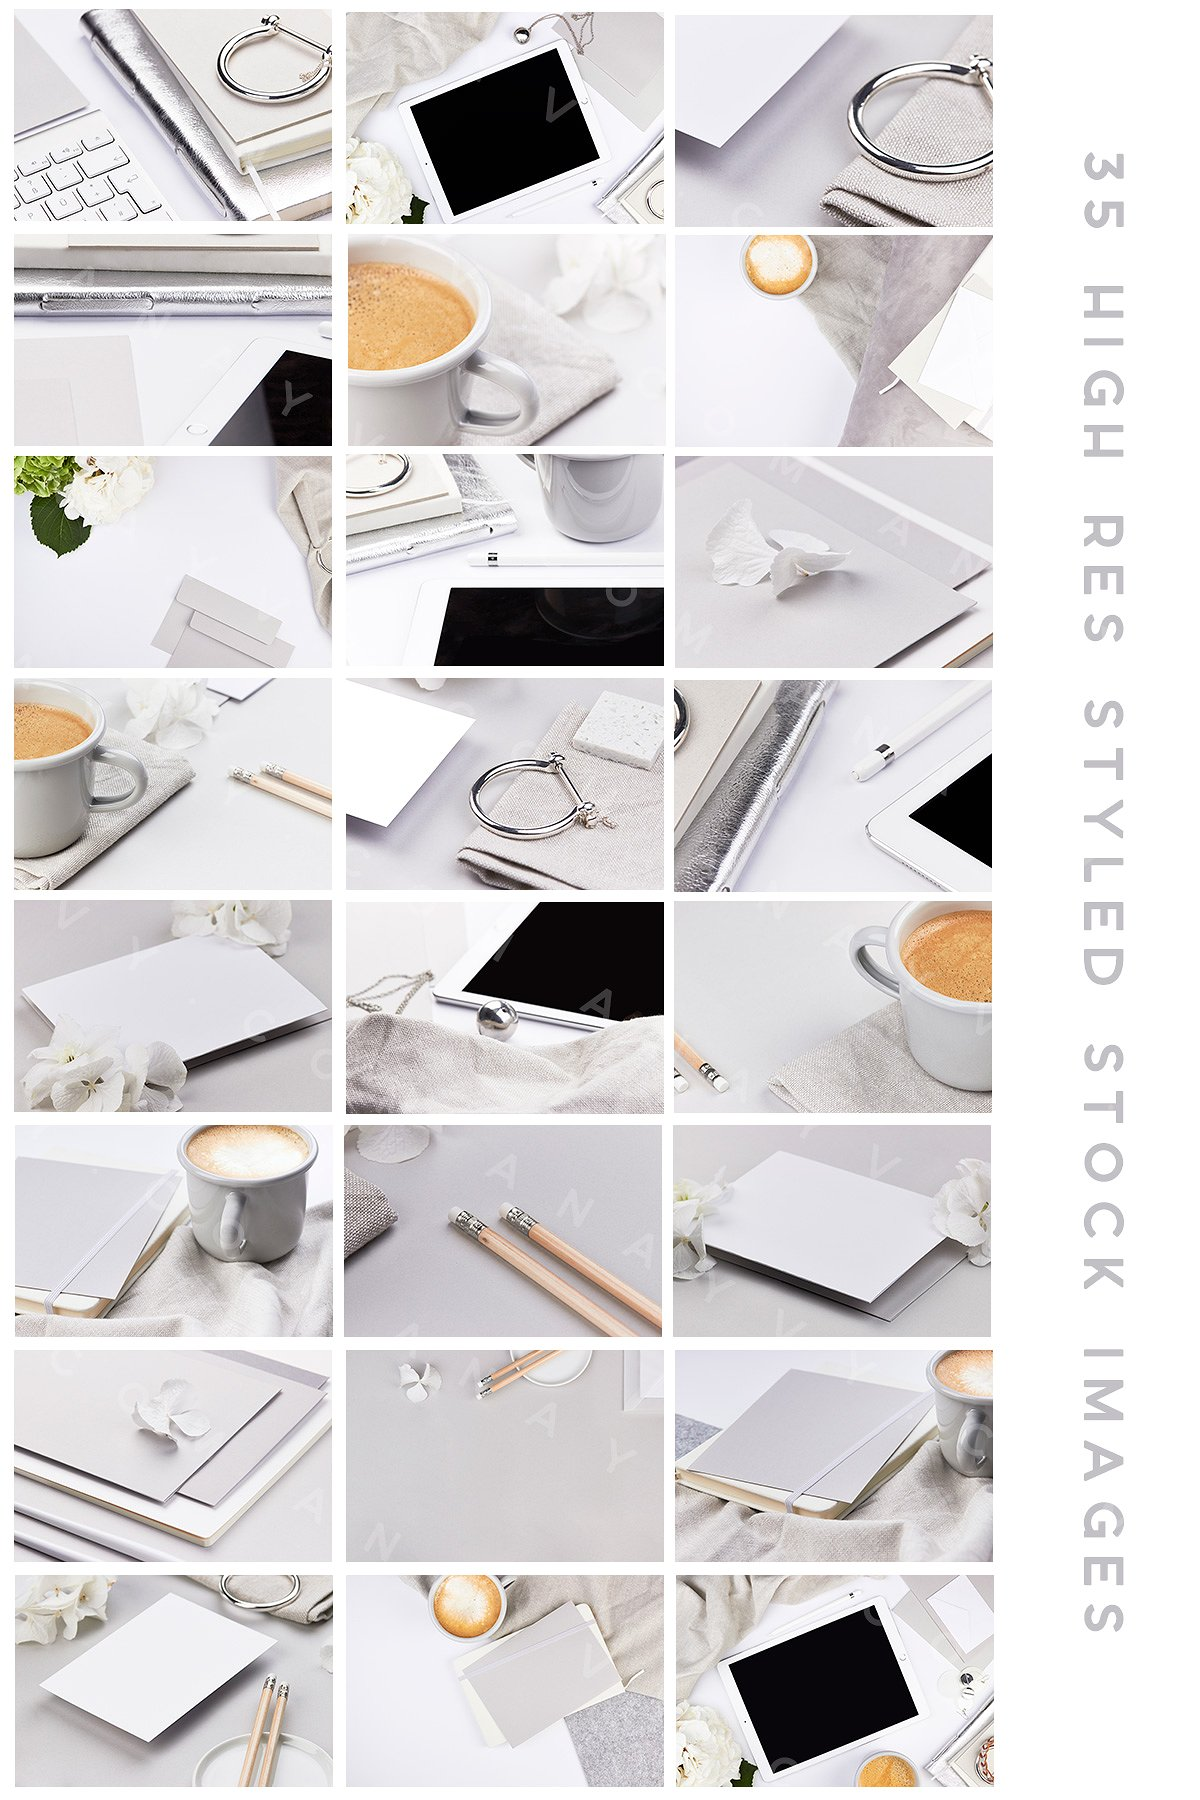 01-stock-image-mockup-collection-social-media-fashion-blogger-light-grey-sophisticated-white-silver-